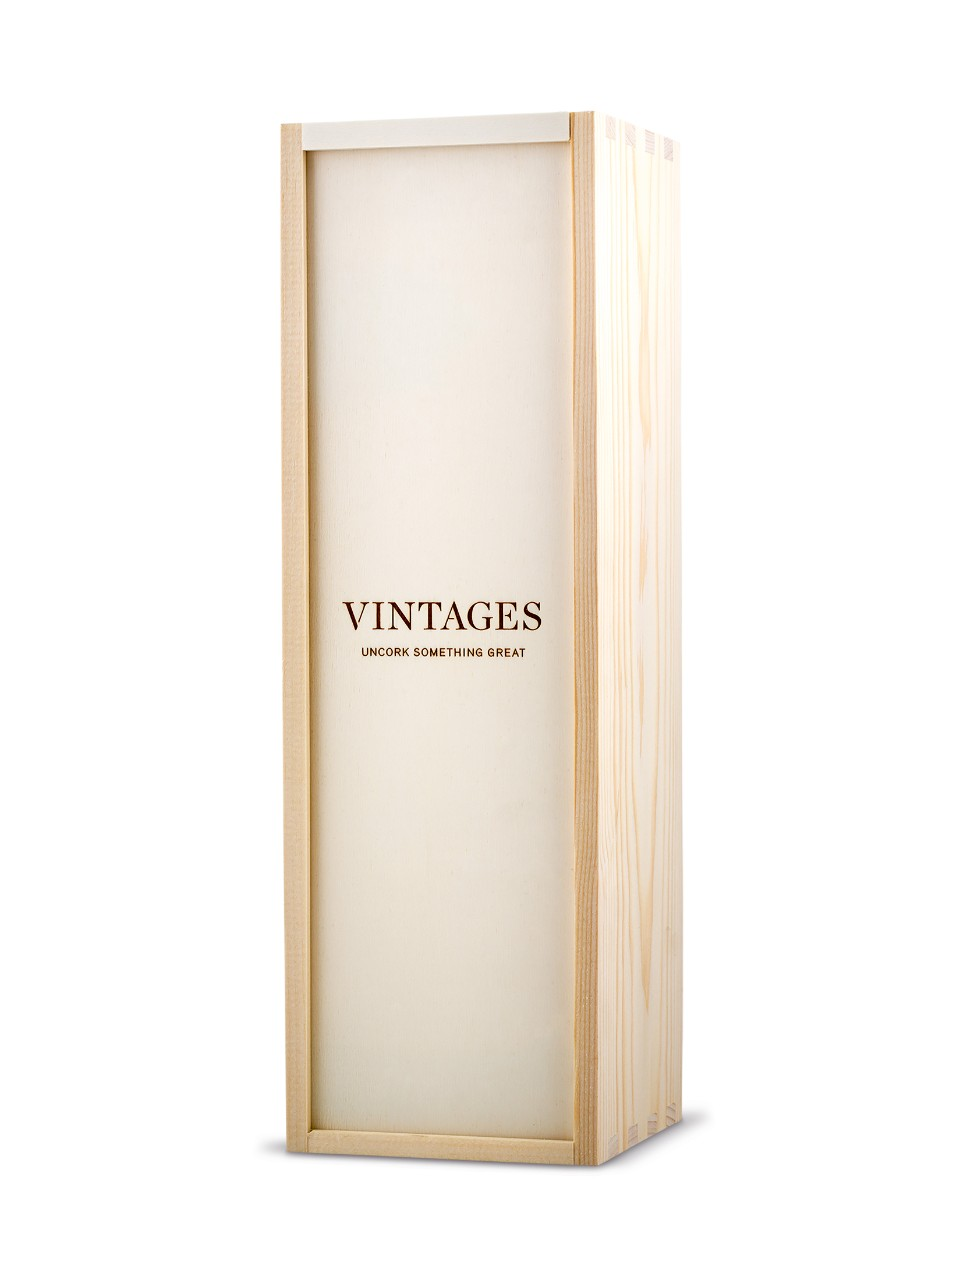 Image for Vintages Wooden Box - 1 Bottle Box from LCBO